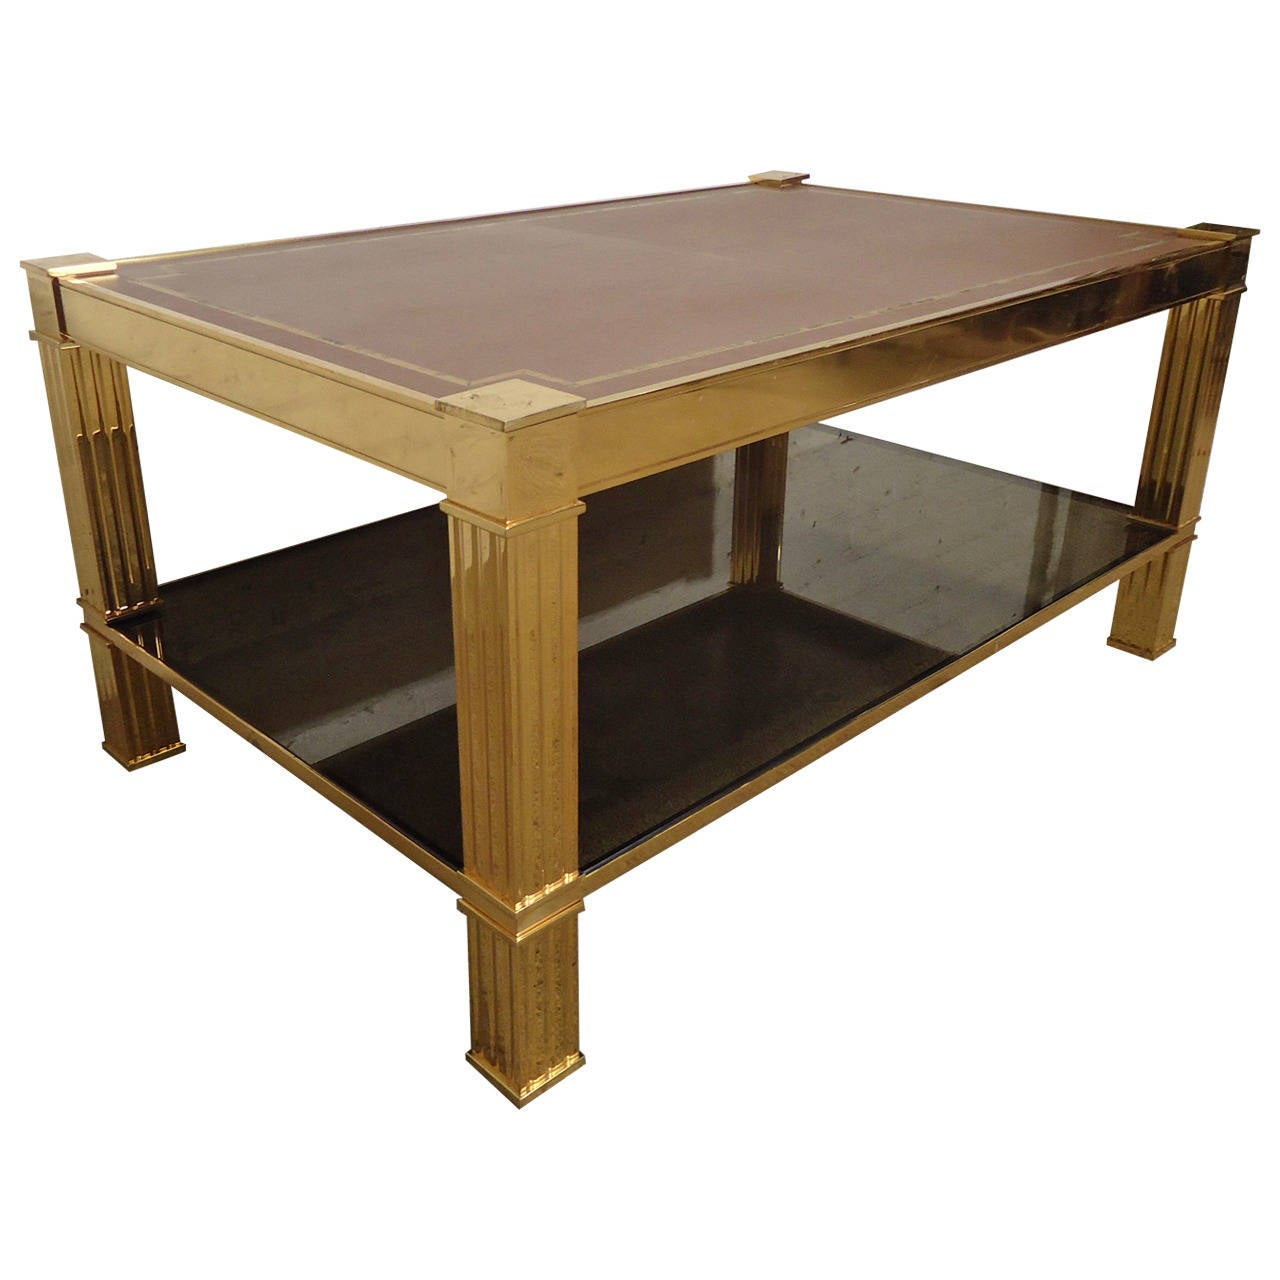 Gorgeous Mastercraft Style Brass And Glass Coffee Table With Leather Top For Sale At 1stdibs